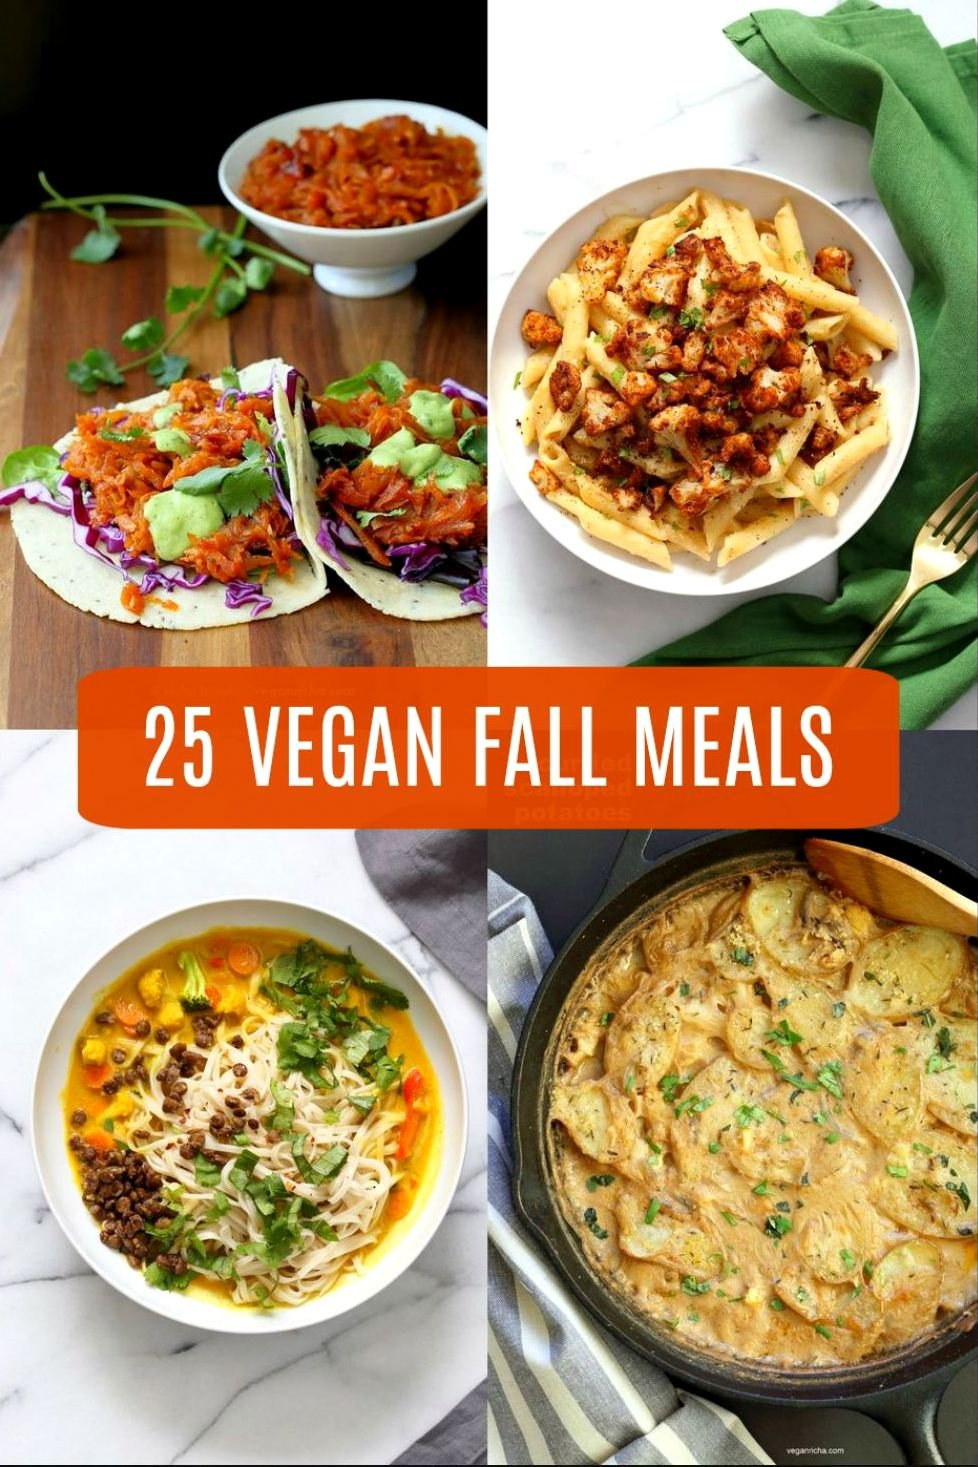 25 Vegan Fall Meals for a chilly day! Casseroles, chilis, gratins, pot pies, soups, and curries. Many are 1 Pot meals. Vegan Fall Recipes. Gluten-free Soy-free options. #veganricha